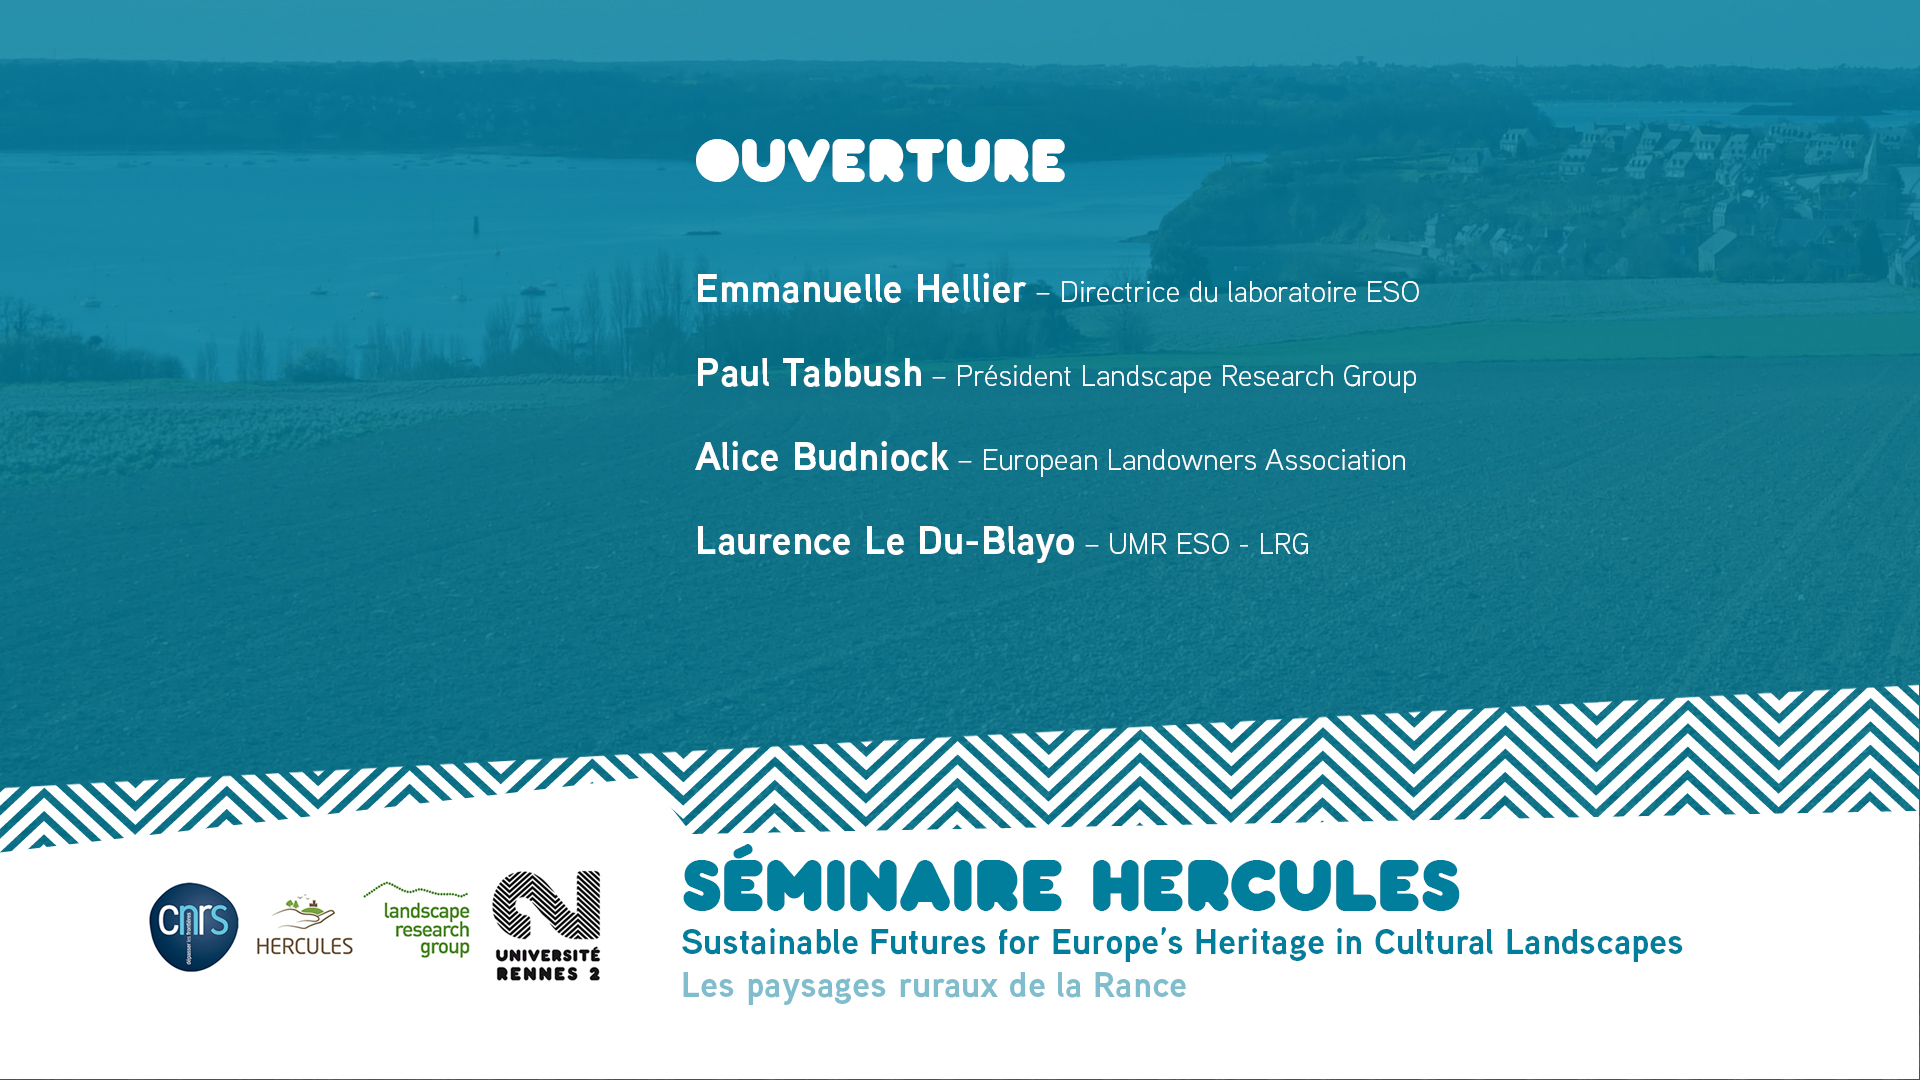 Ouverture du séminaire HERCULES - Sustainable Futures for Europe's Heritage in Cultural Landscapes |